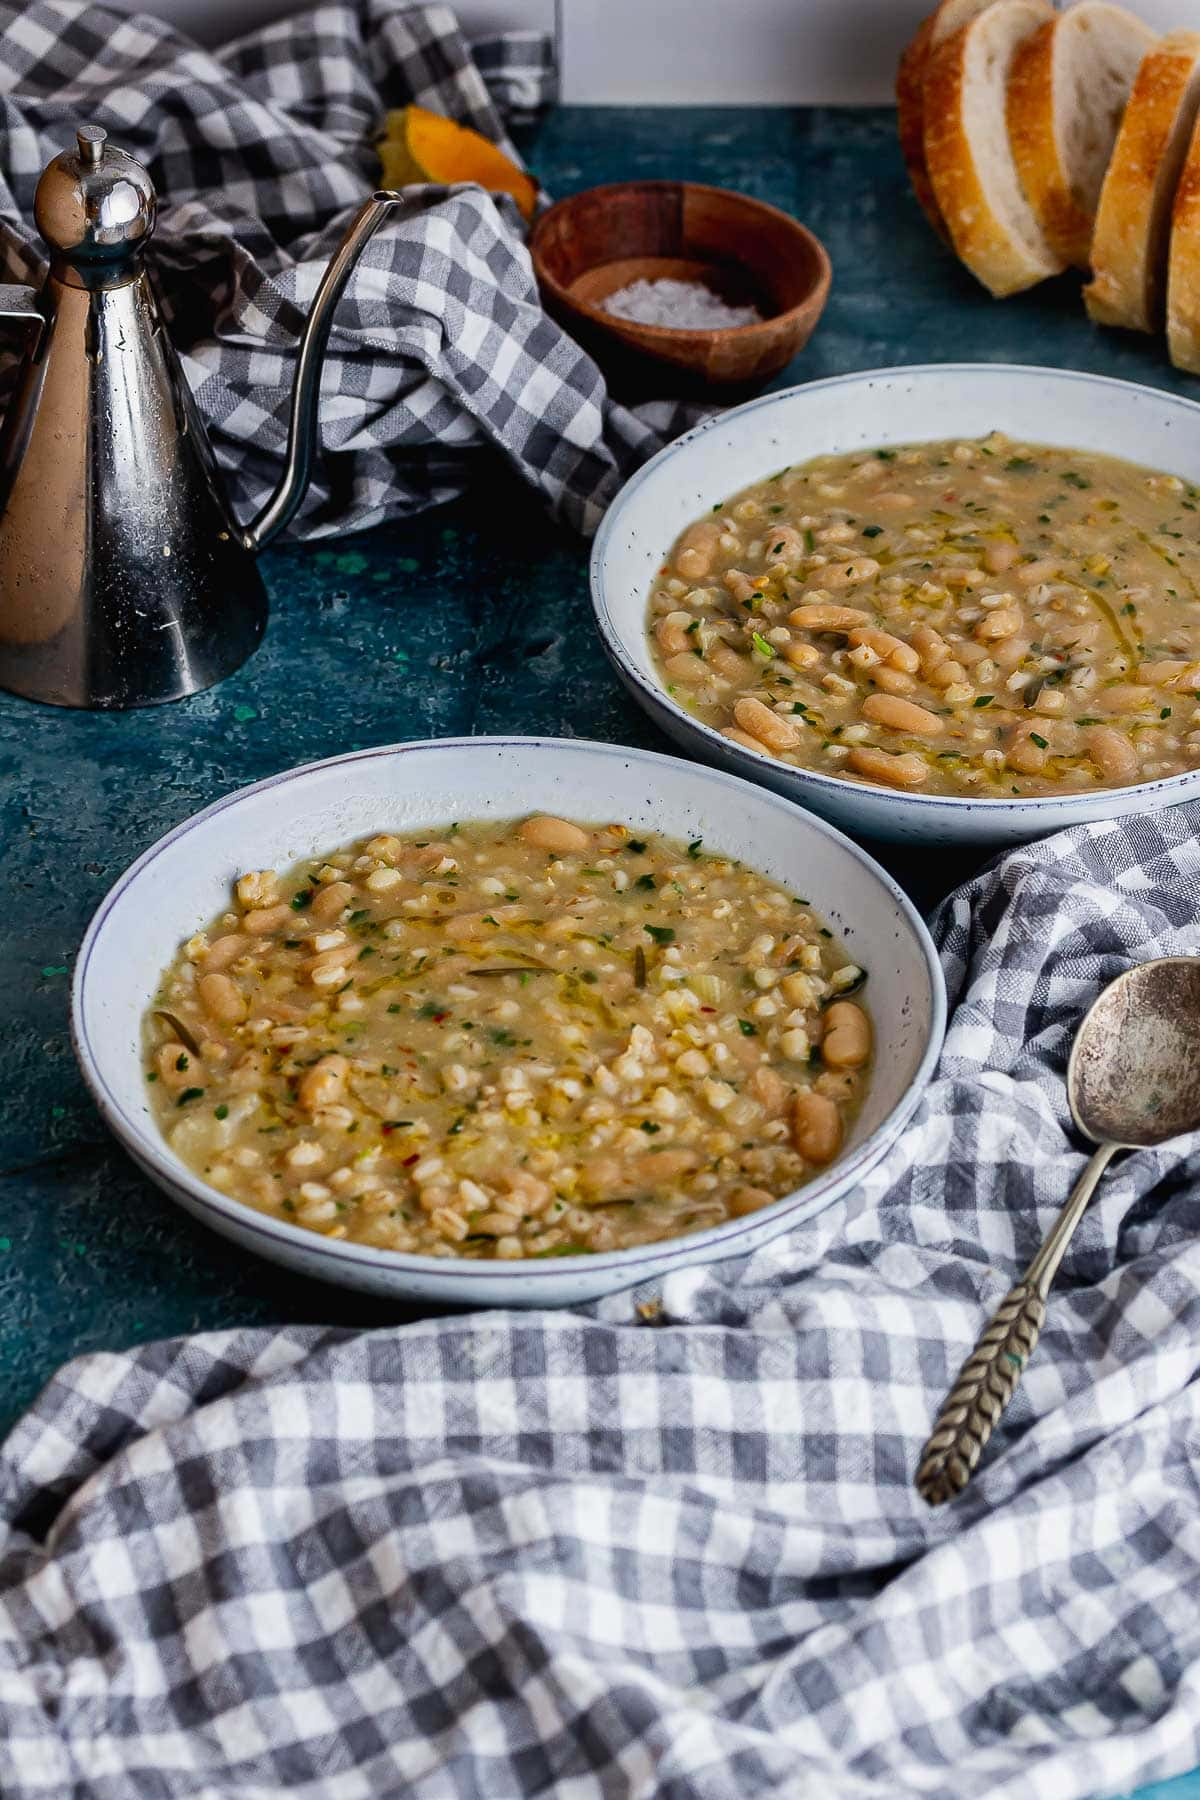 Bean and pearl barley soup on a blue surface with a tea towel